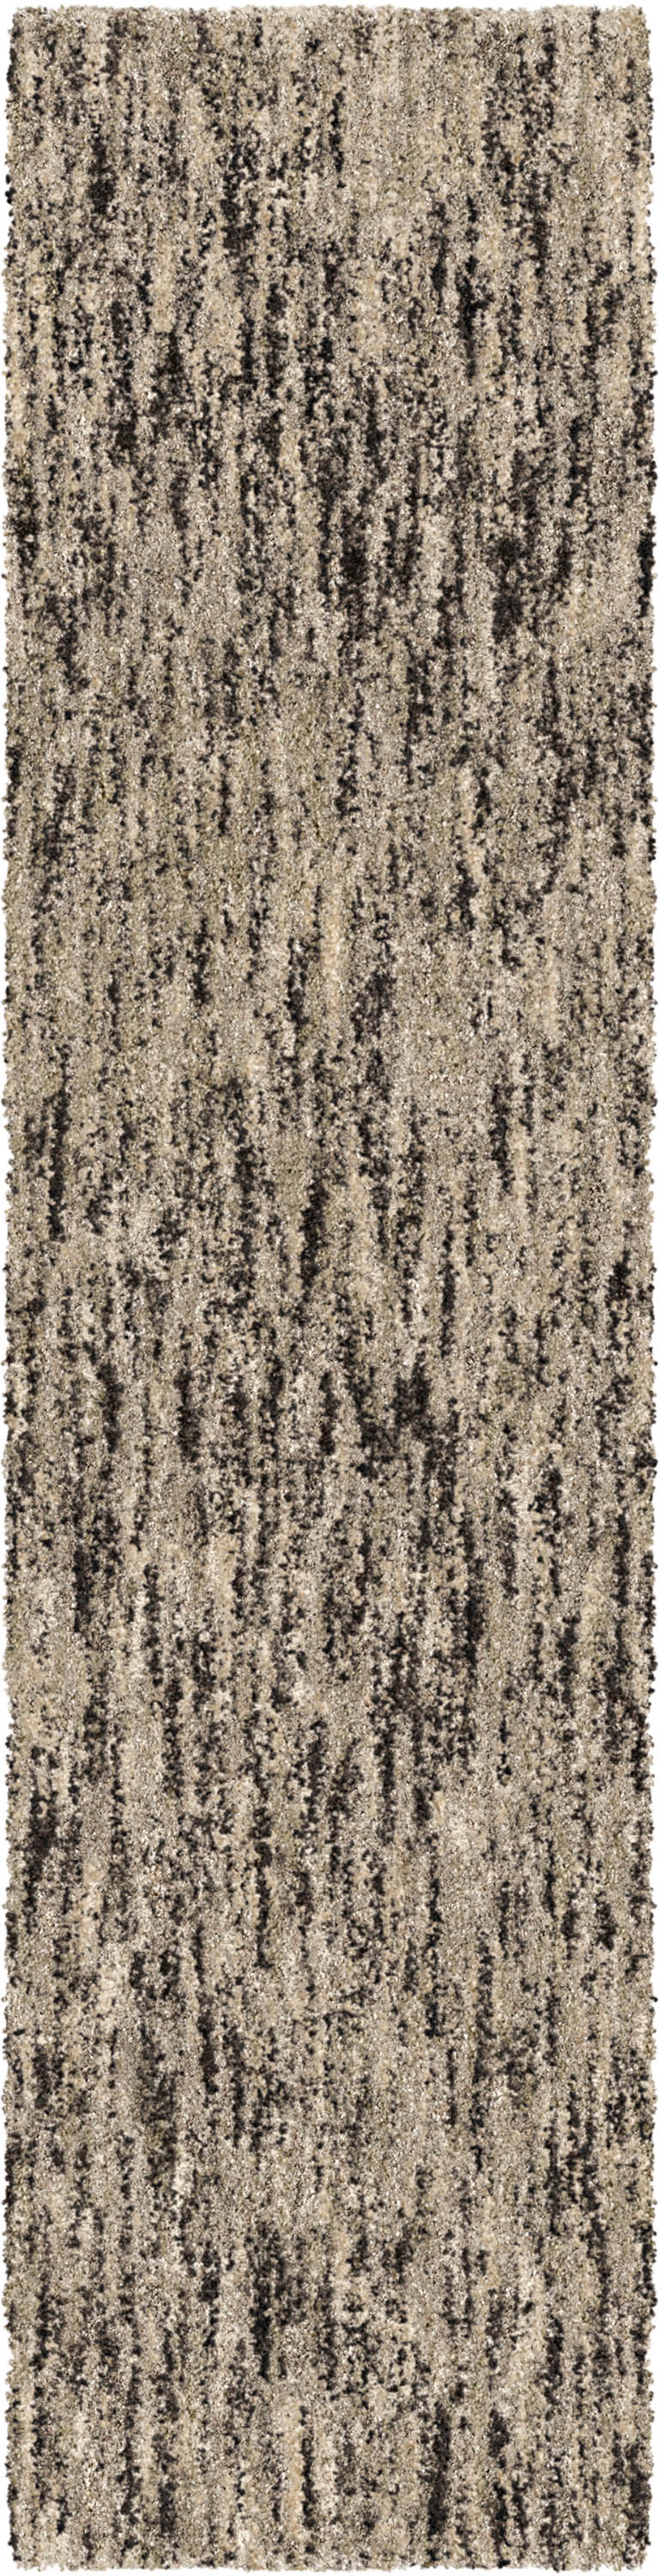 "Palmetto Living Next Generation Multi solid Silverton Area Rug - 7'10"" x 10'10"""